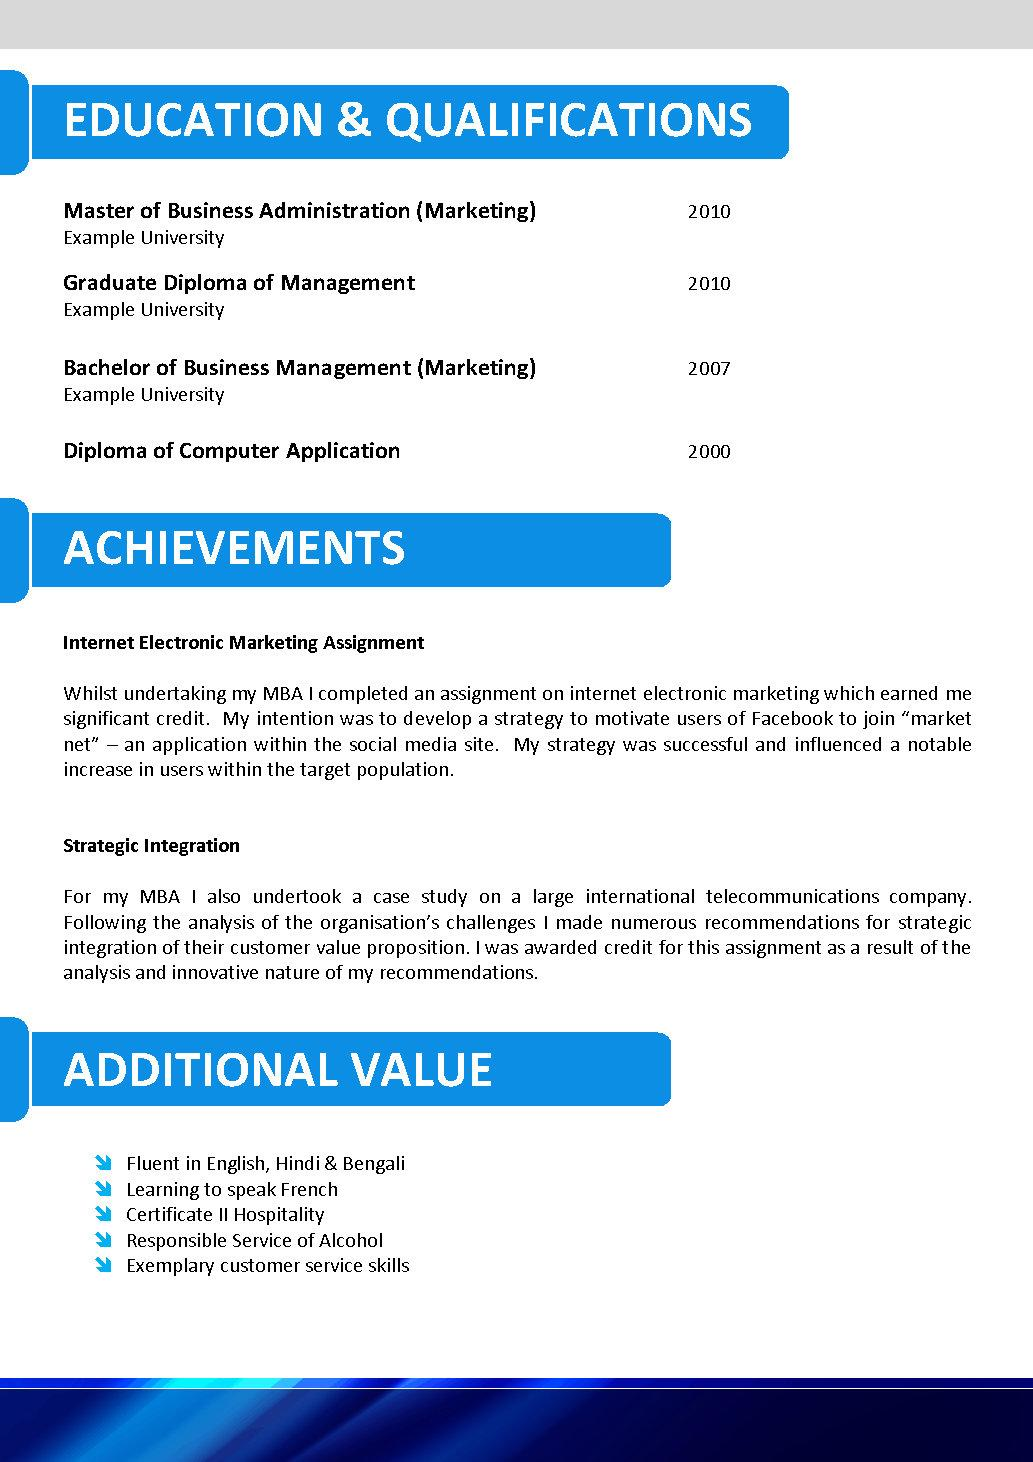 Teaching Experience Resume  Template For Cv   Academic Resume Vs Vitae Curriculum  I Have Attached My Resume Pdf with Art Resume Template Pdf  Example Resume Word Doc  Free Blank Resume Example Of Resume Summary Pdf